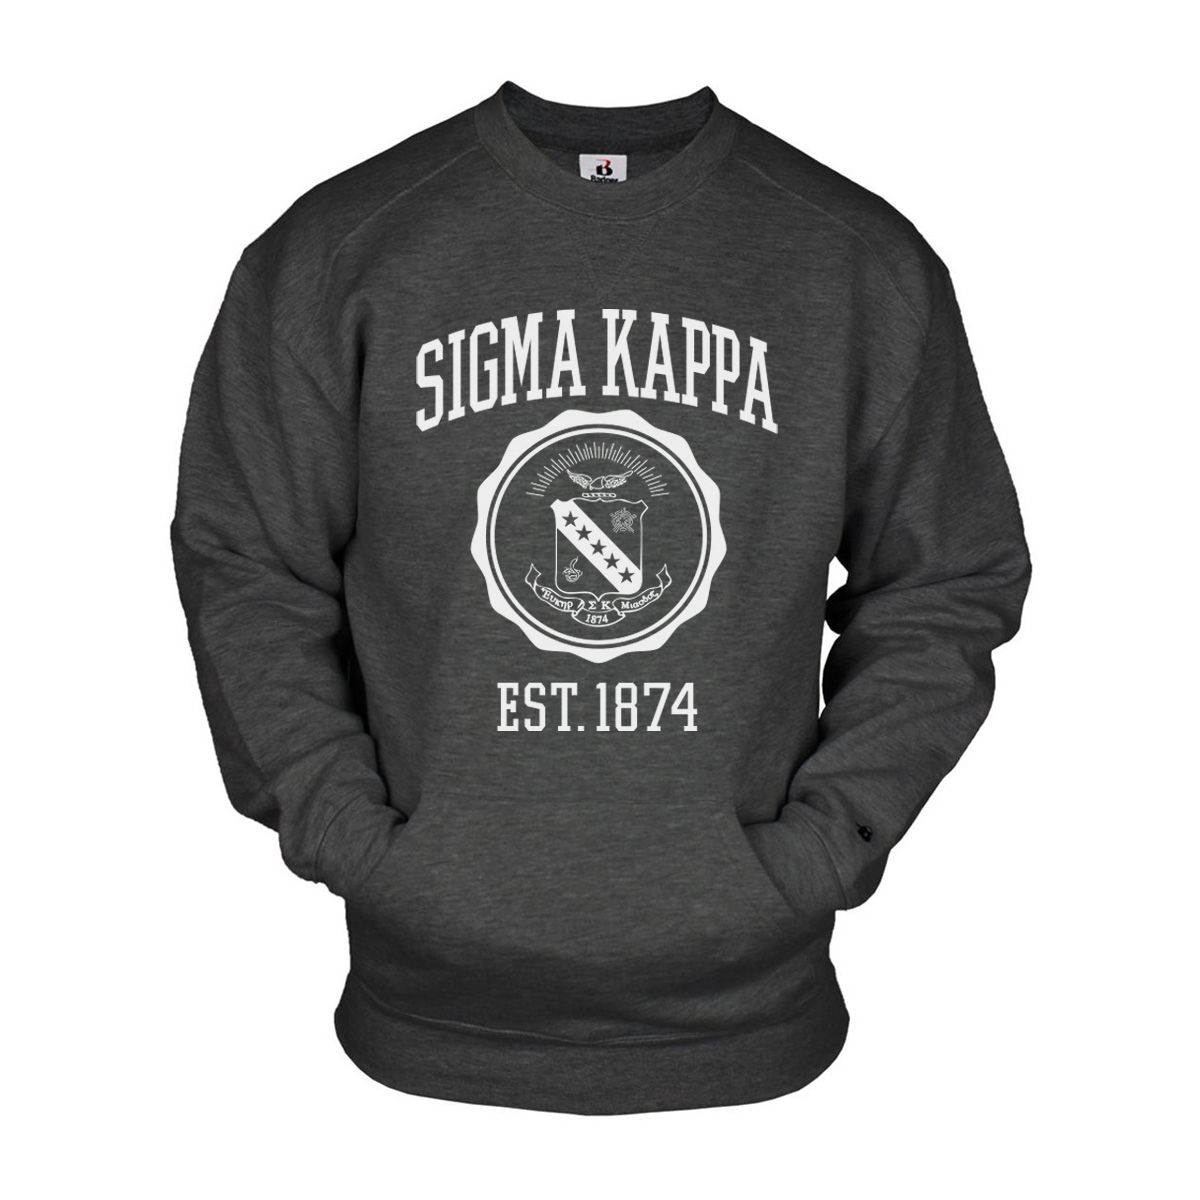 Campus Classics Tau Kappa Epsilon Crew Neck Sweatshirt Sewn On Greek Letters